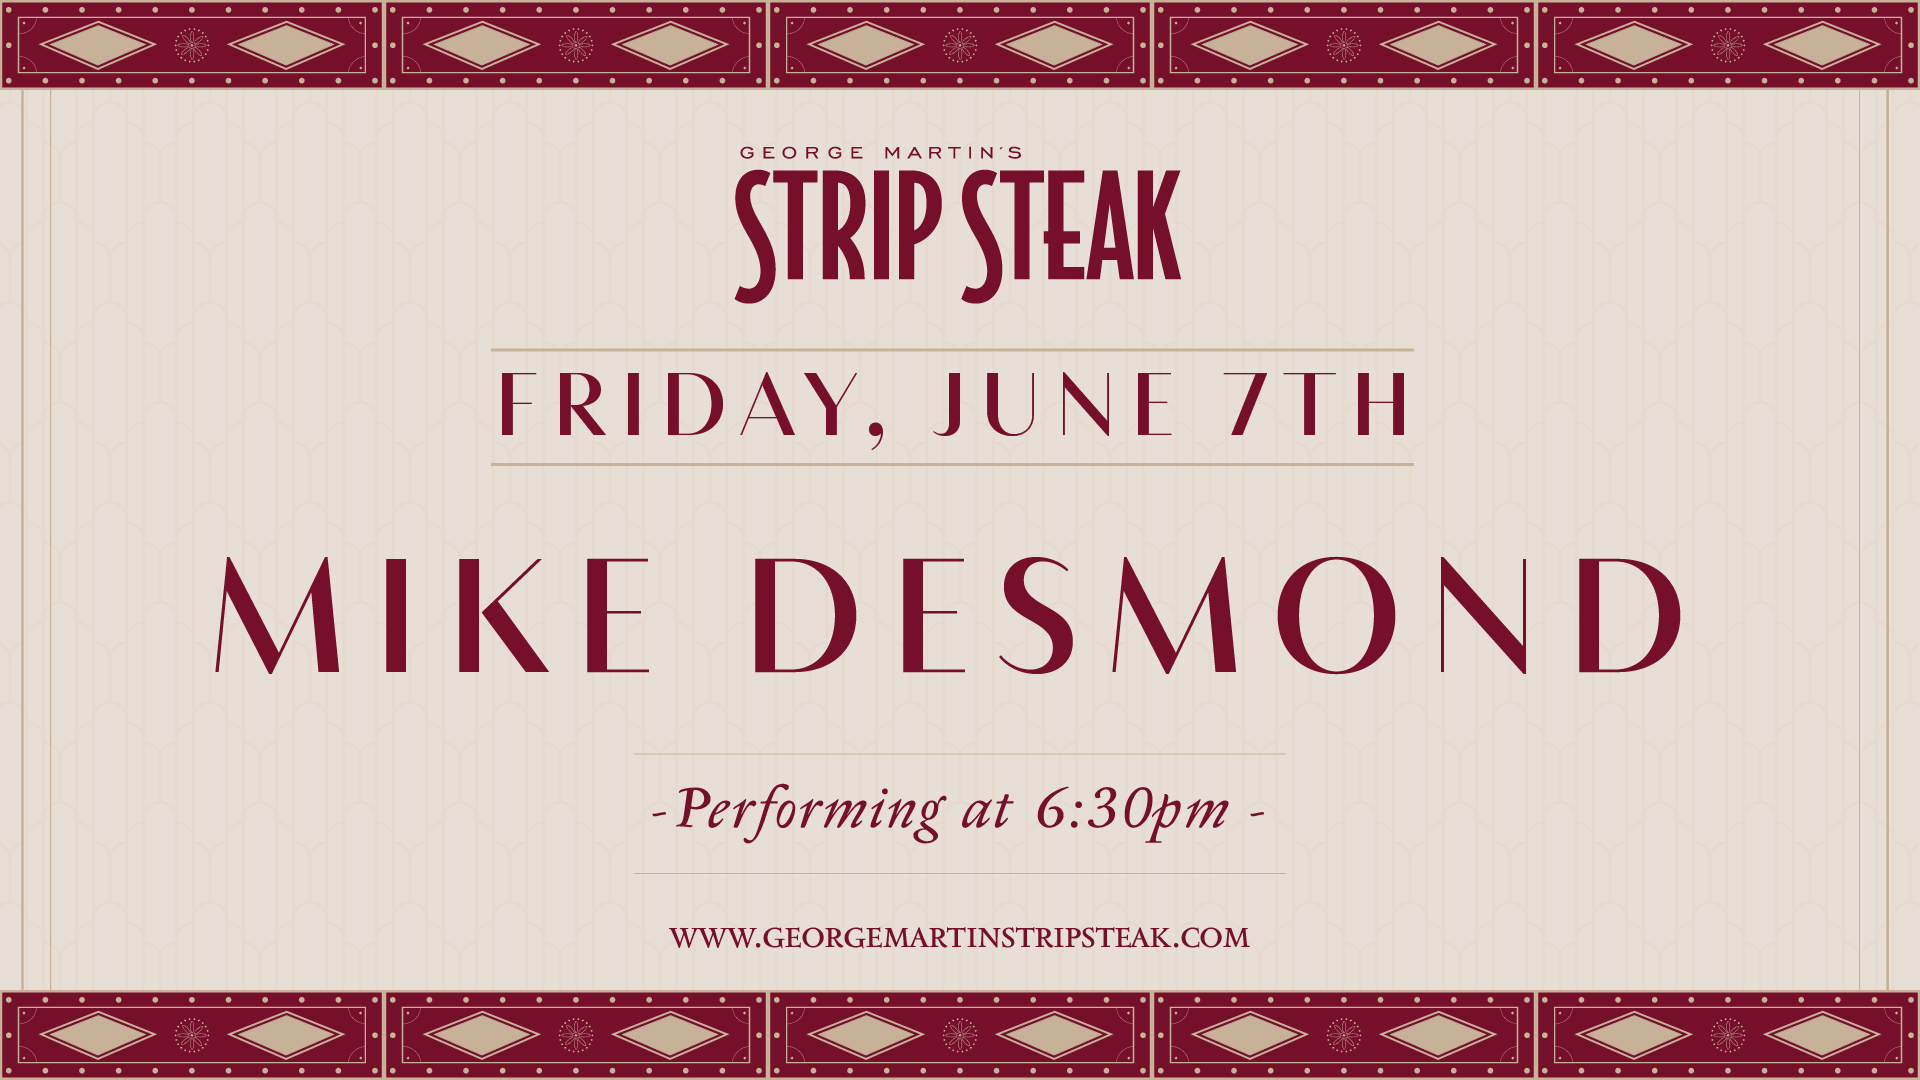 Flyer for live music with Mike Desmond on June 7th at 6:30pm